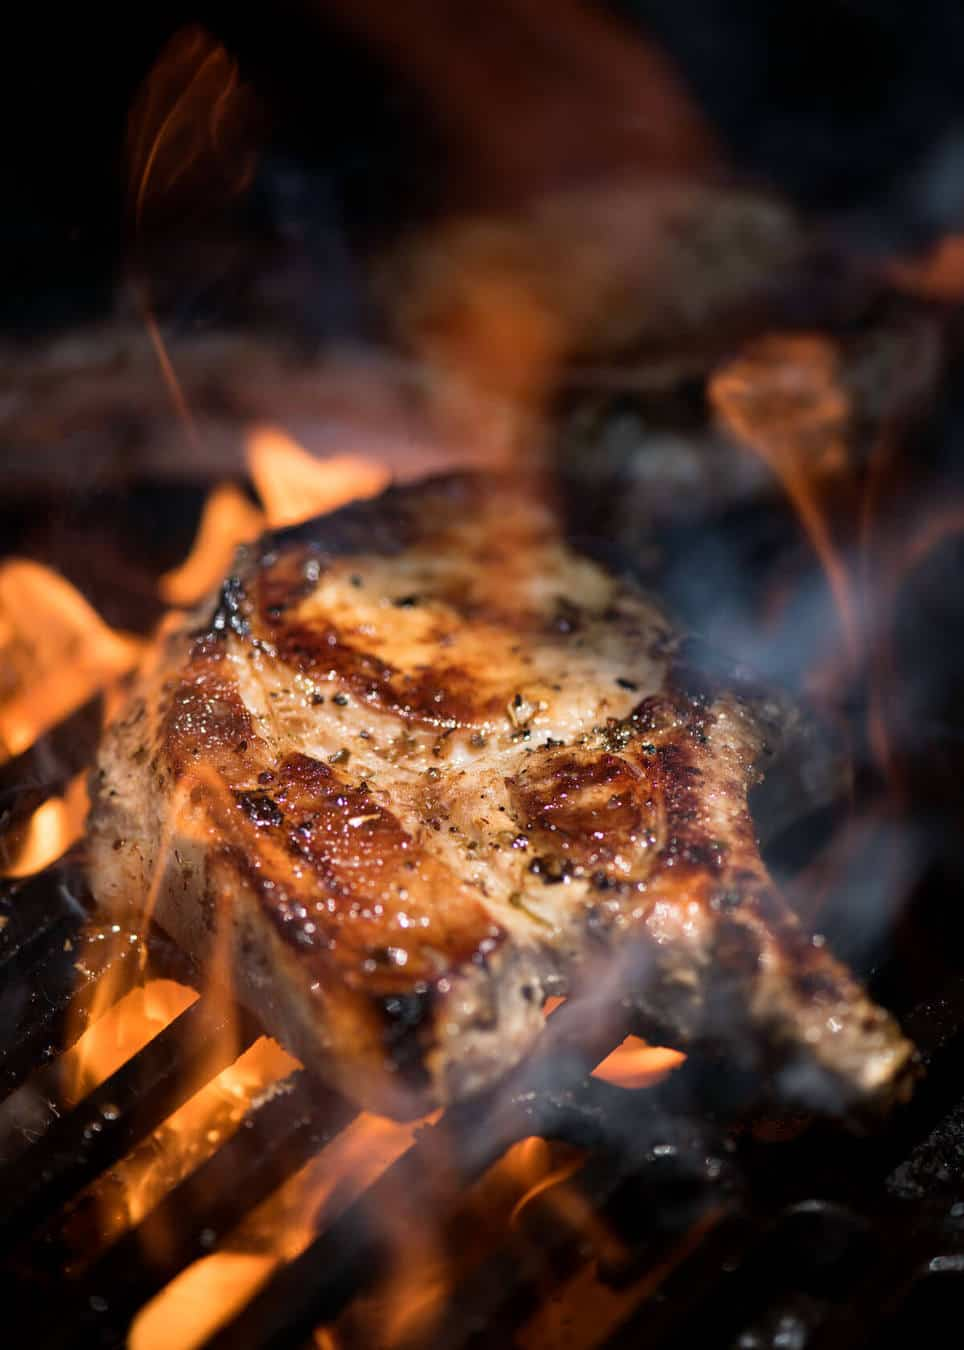 Lemon Garlic Marinated Grilled Pork Chops on the barbecue being licked by flames.